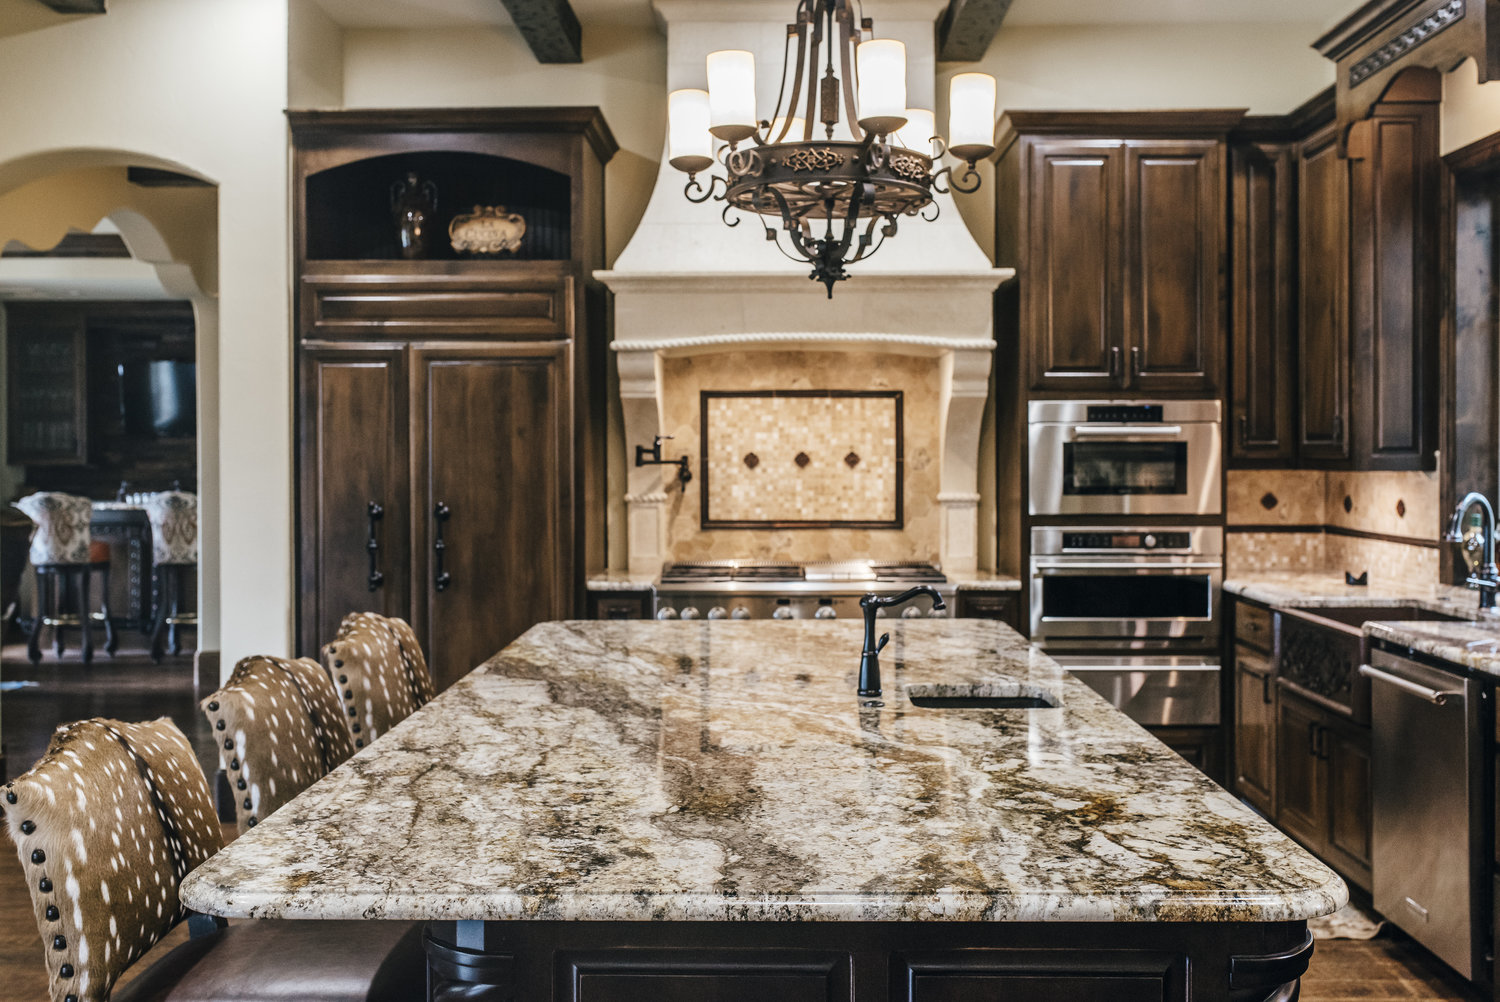 Image result for NATURAL STONE KITCHEN COUNTERTOP